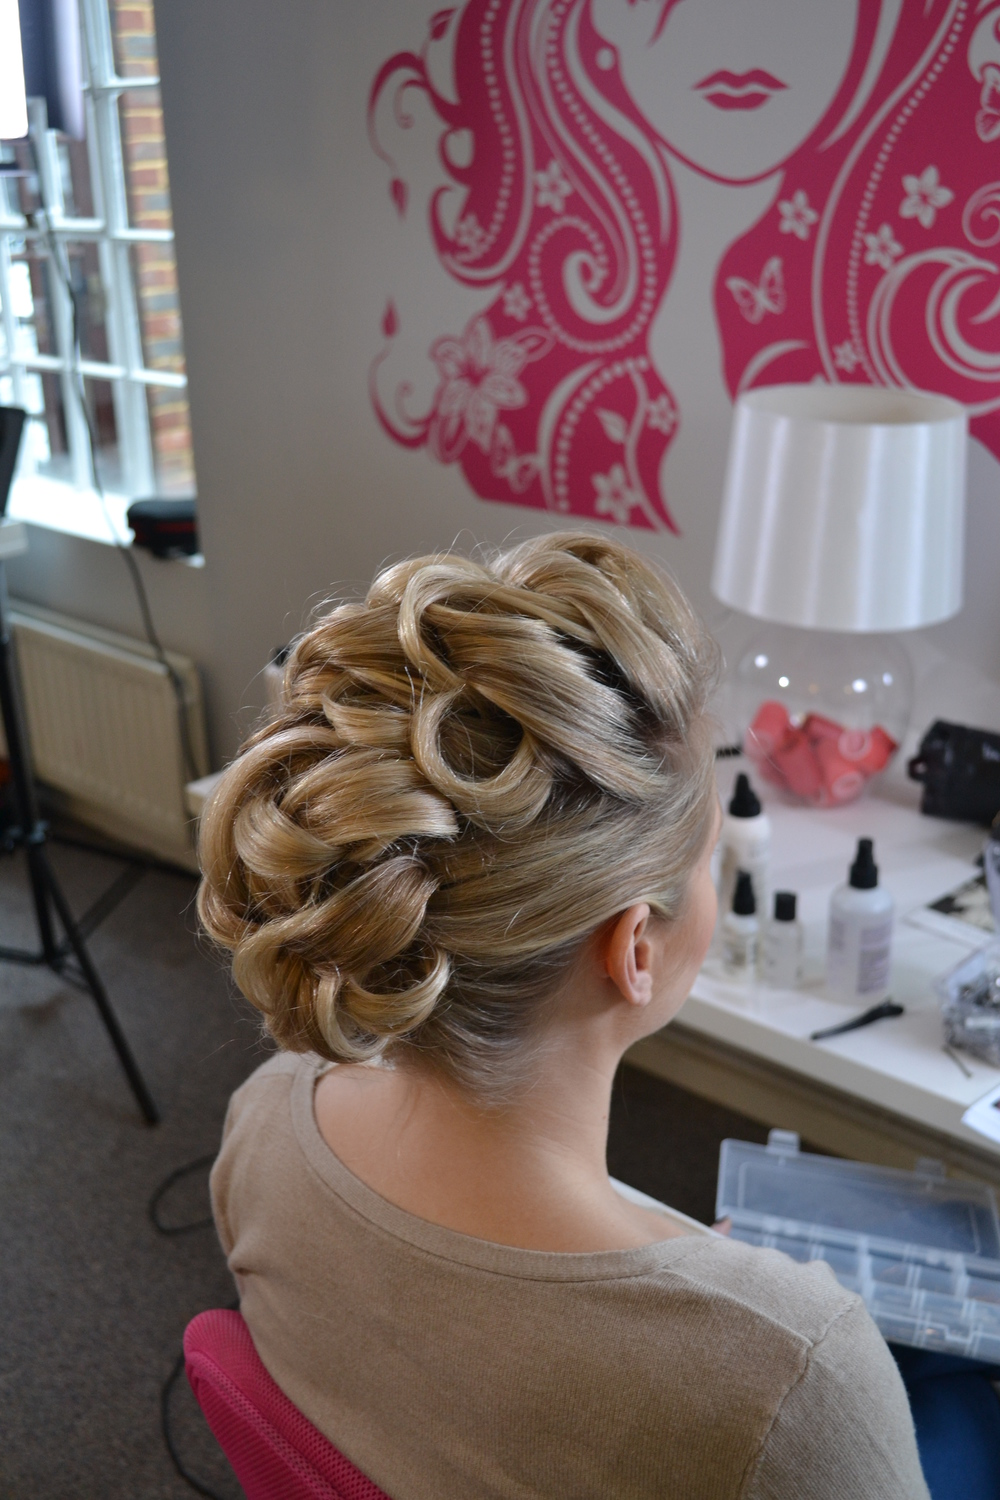 Contempory hair up style